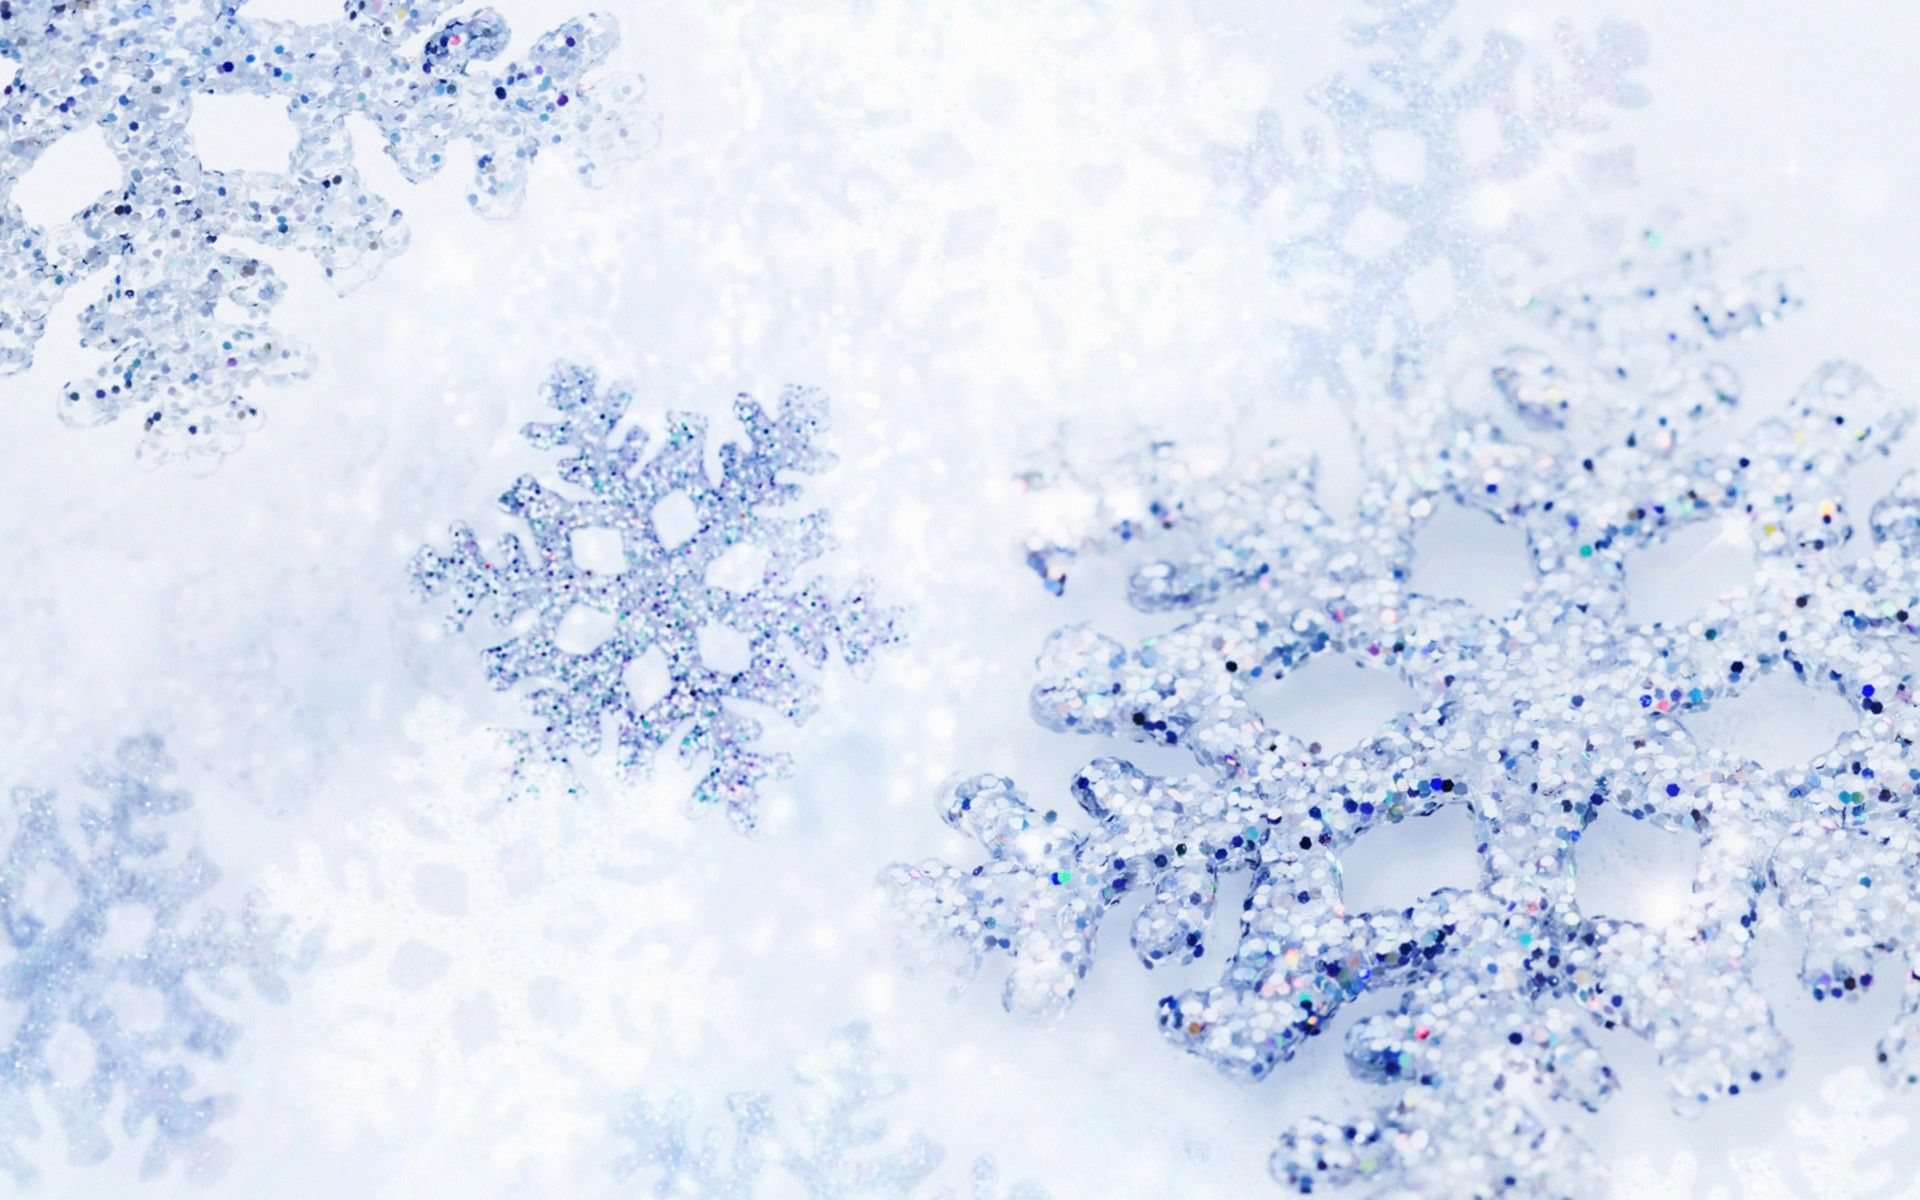 White Christmas Snow Background.Pin On Christmas Wallpaper